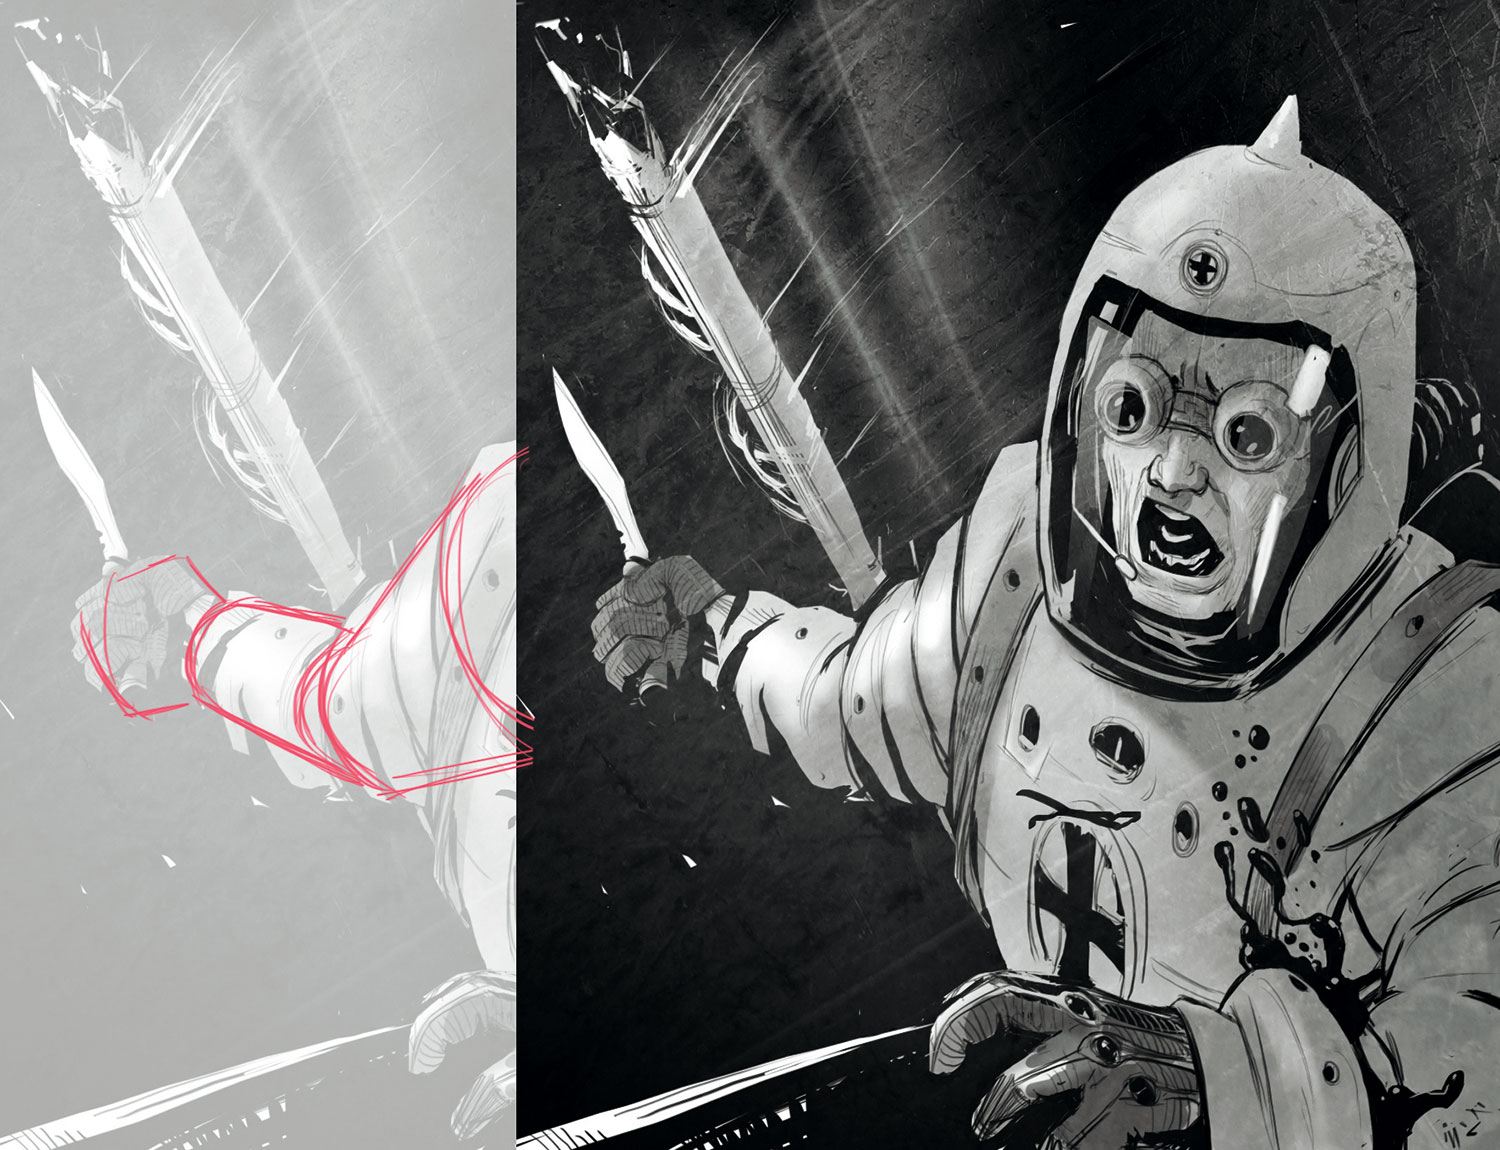 Man in a space suit, outside a space ship, screaming